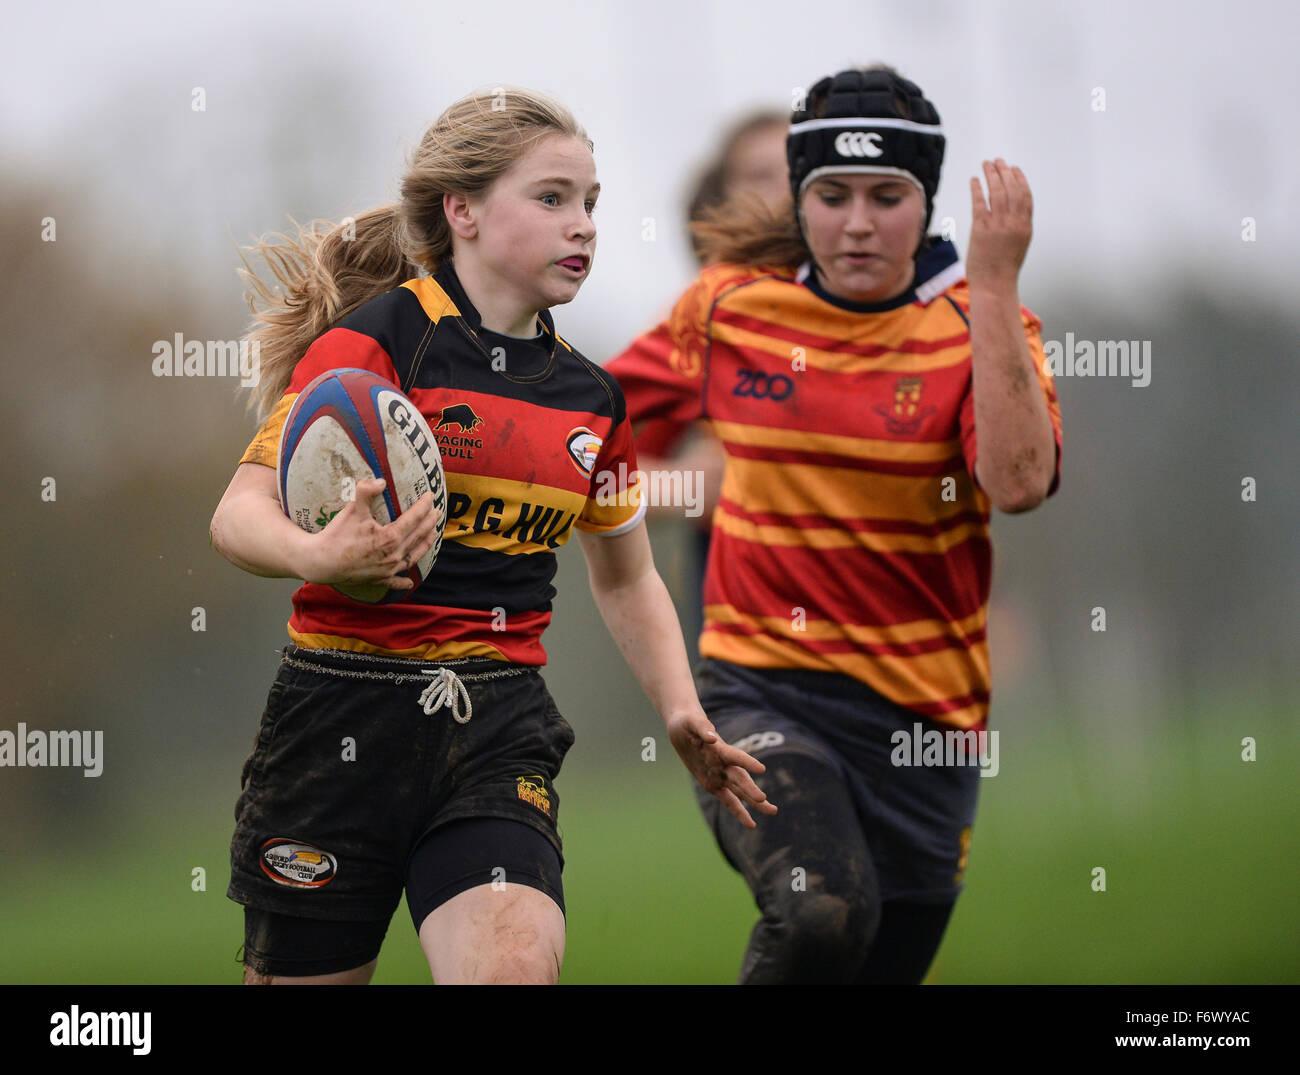 Women's participant sports. Ashford Rugby Club, 8th November 2015 - Stock Image